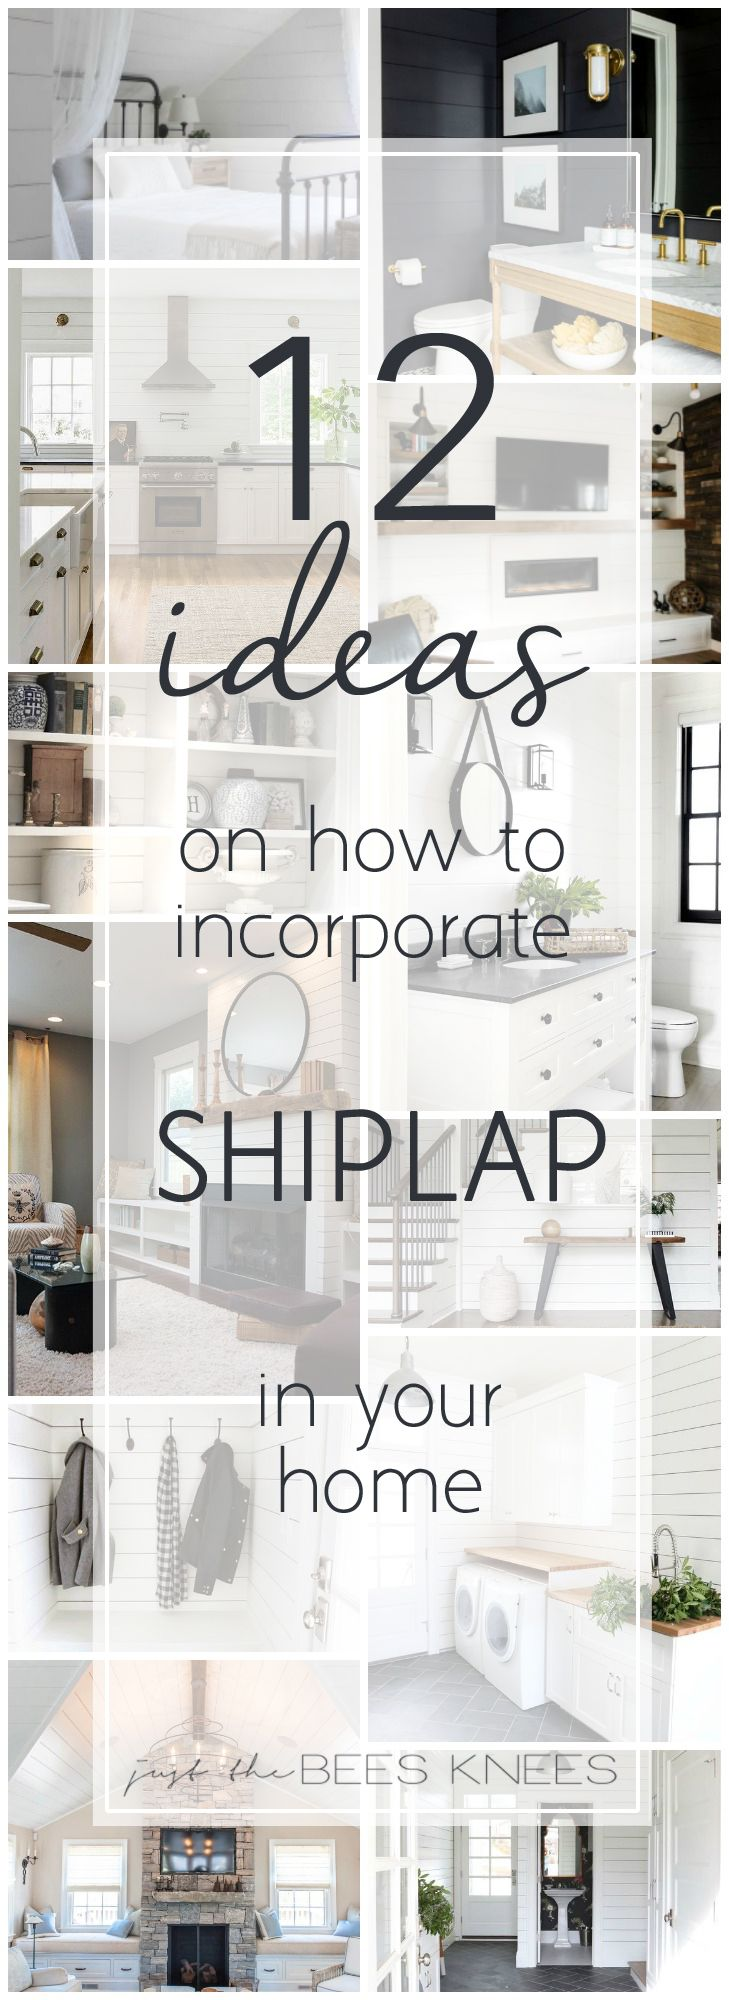 12 ideas on how to incorporate shiplap into your home! #shiplap